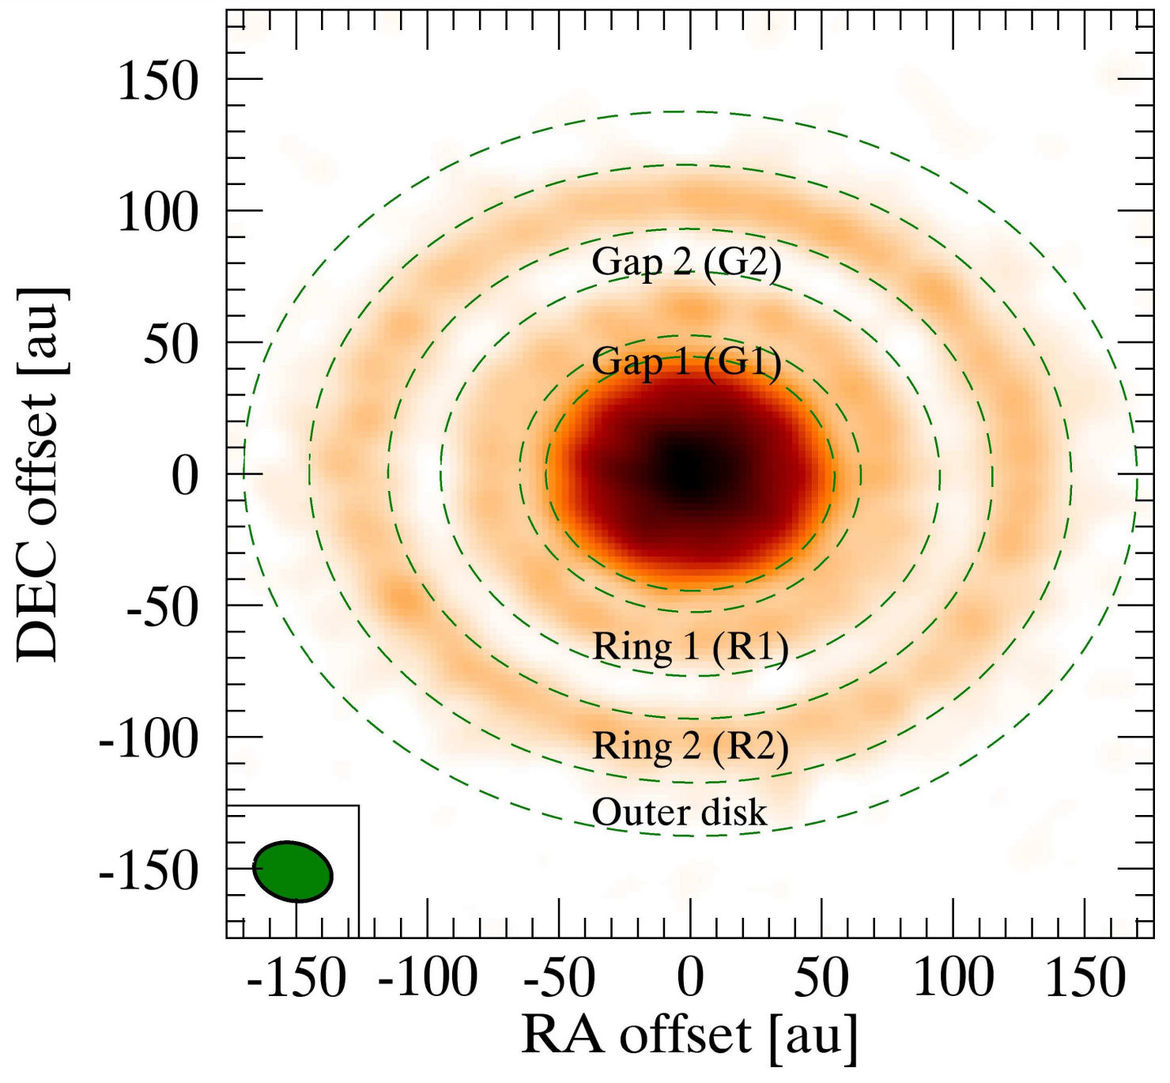 Schematic of the dust rings around the young star AS 209. The axes are directions on the sky (vertical = north/south, horizontal = east/west) and 1 AU is 150 million km. Credit: Fedele et al.